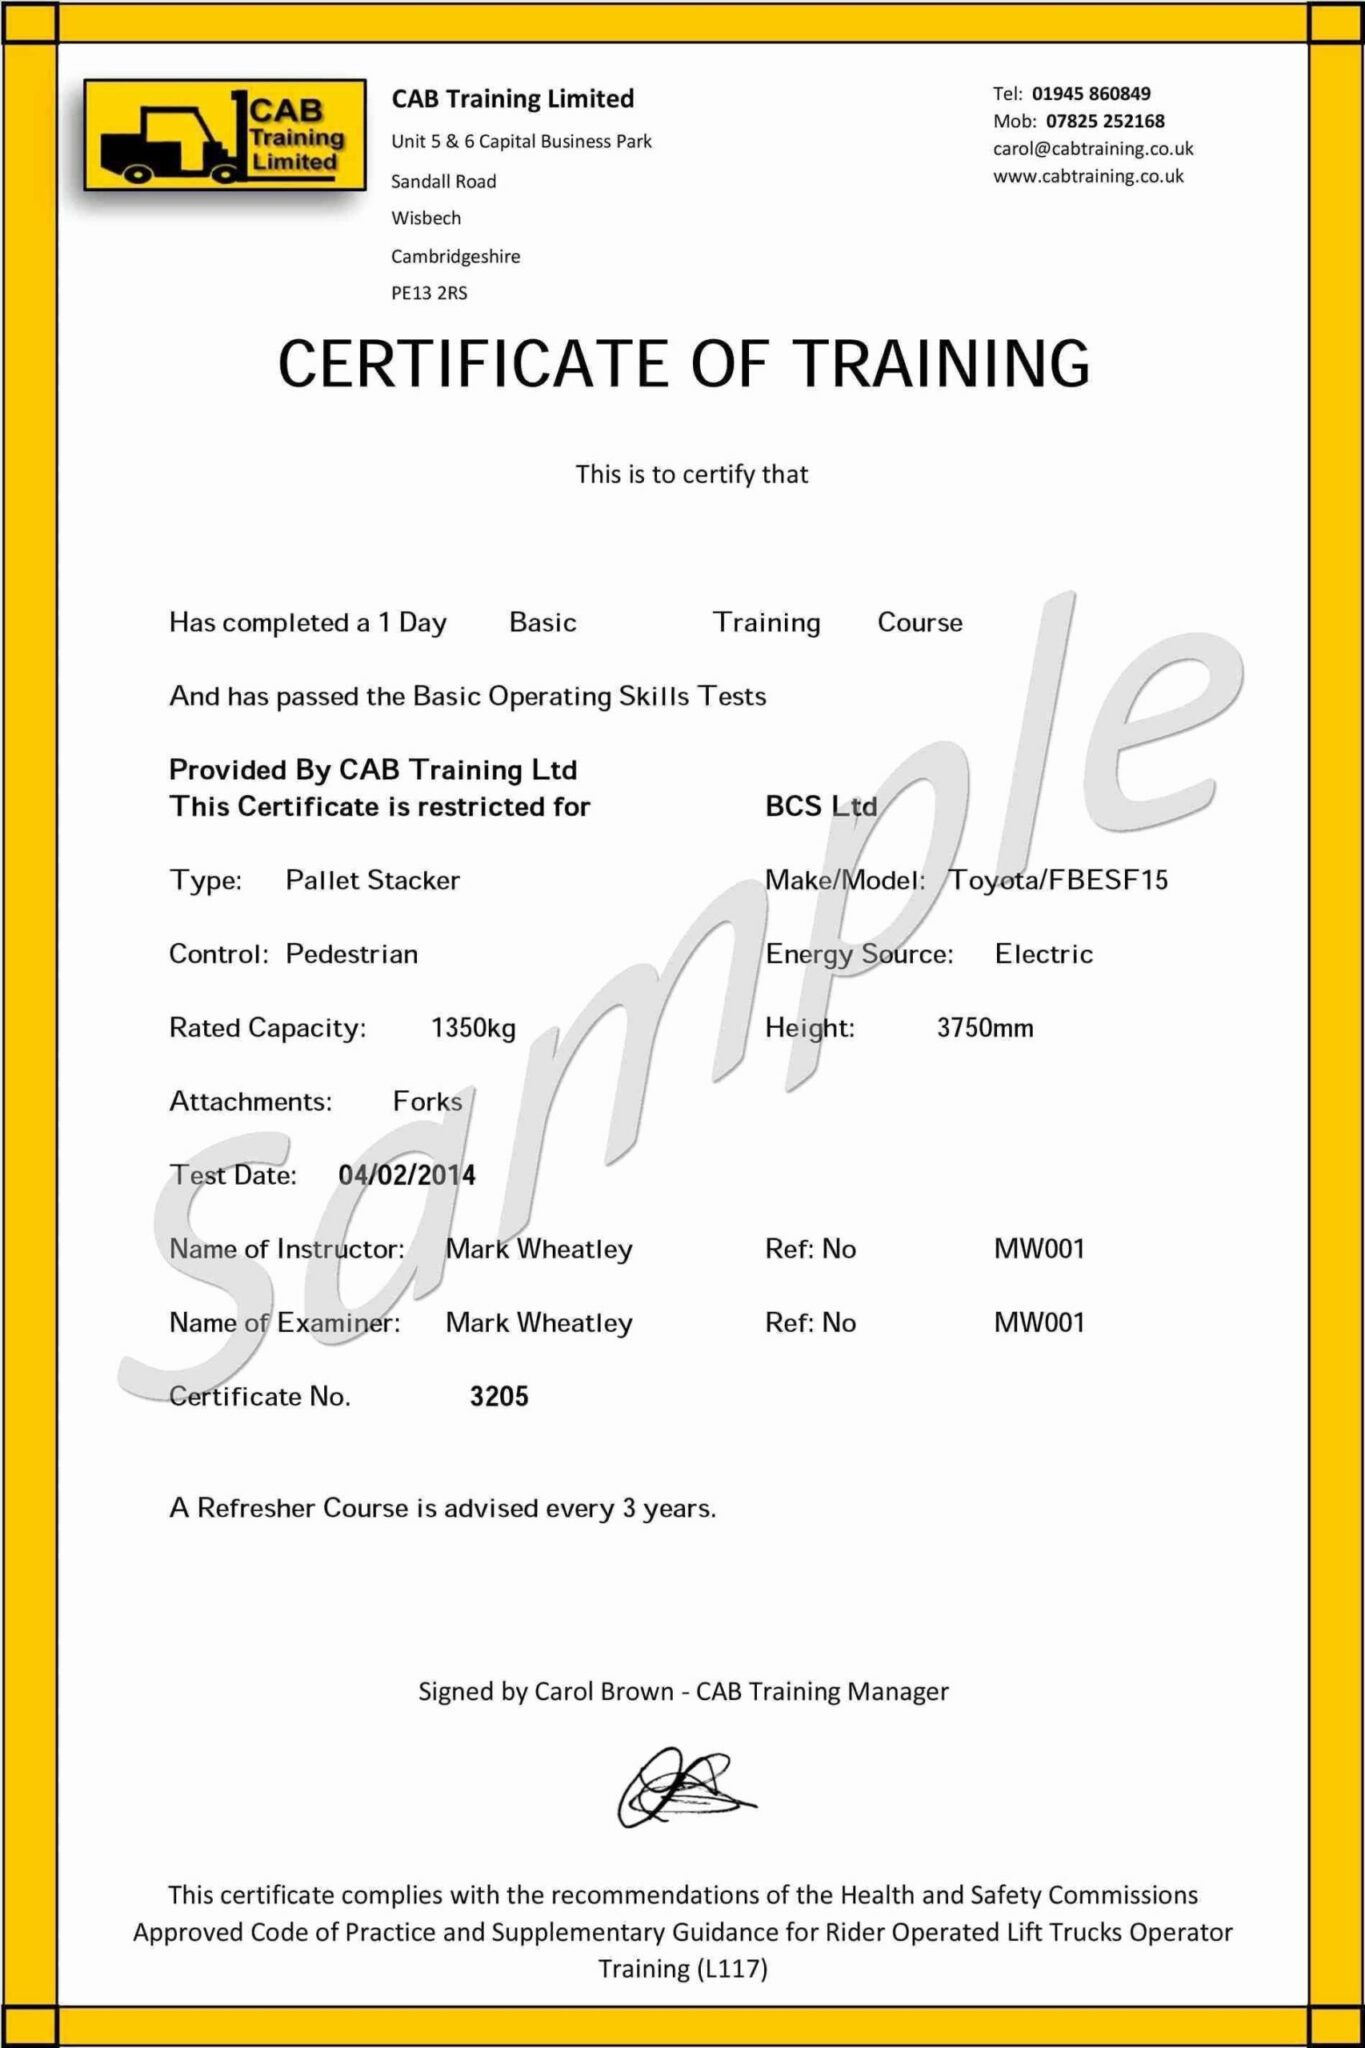 Forklift Operator Card Template Carlynstudio With Regard To Forklift Certificati In 2020 Certificate Templates Card Templates Free Certificate Of Completion Template